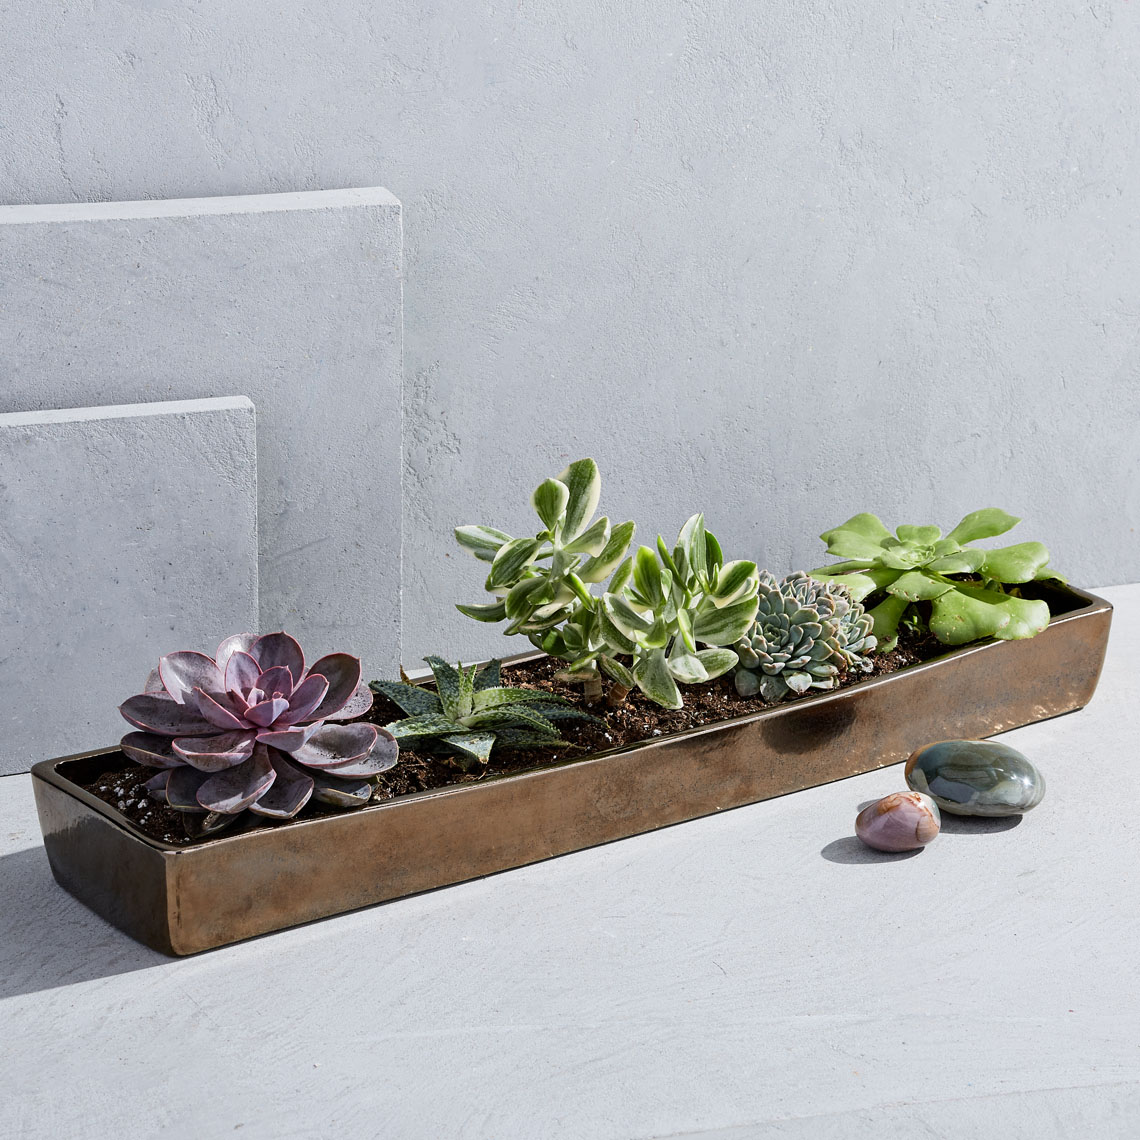 pip-elongated-ceramic-centerpiece-tray-large-espresso-su17-060